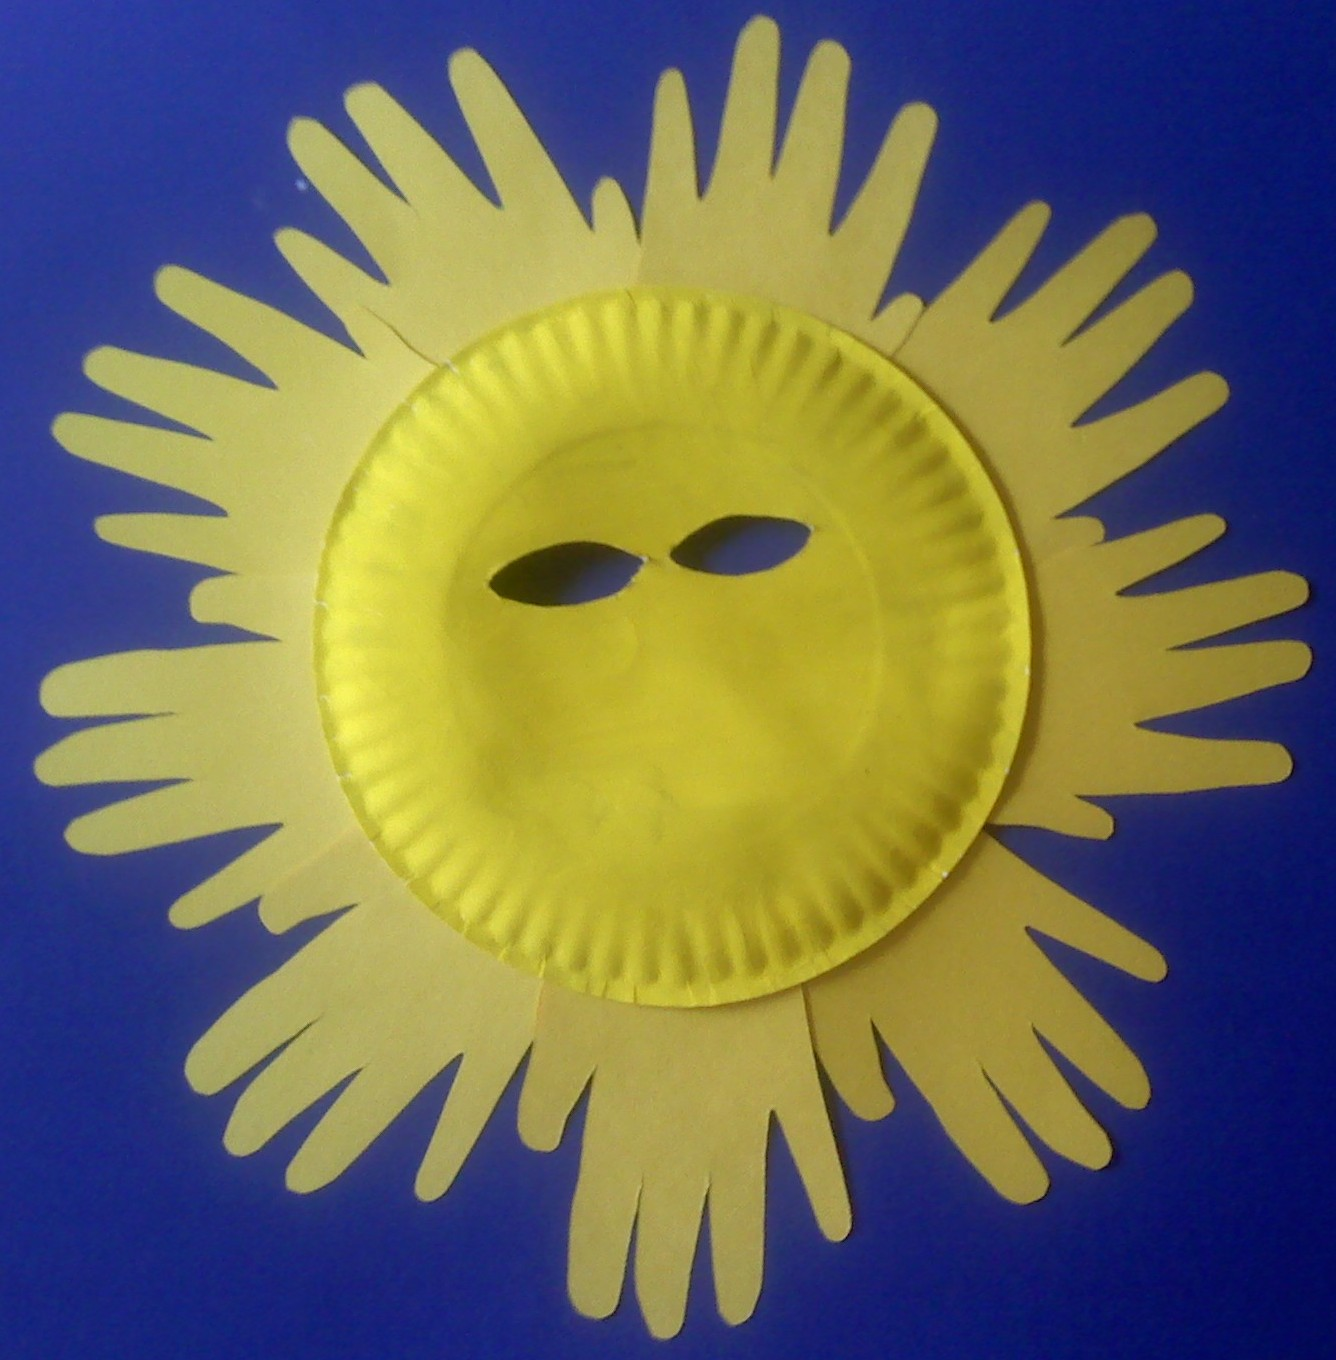 Paper Plate Sun Mask & Crafts For Preschoolers: Paper Plate Sun Mask